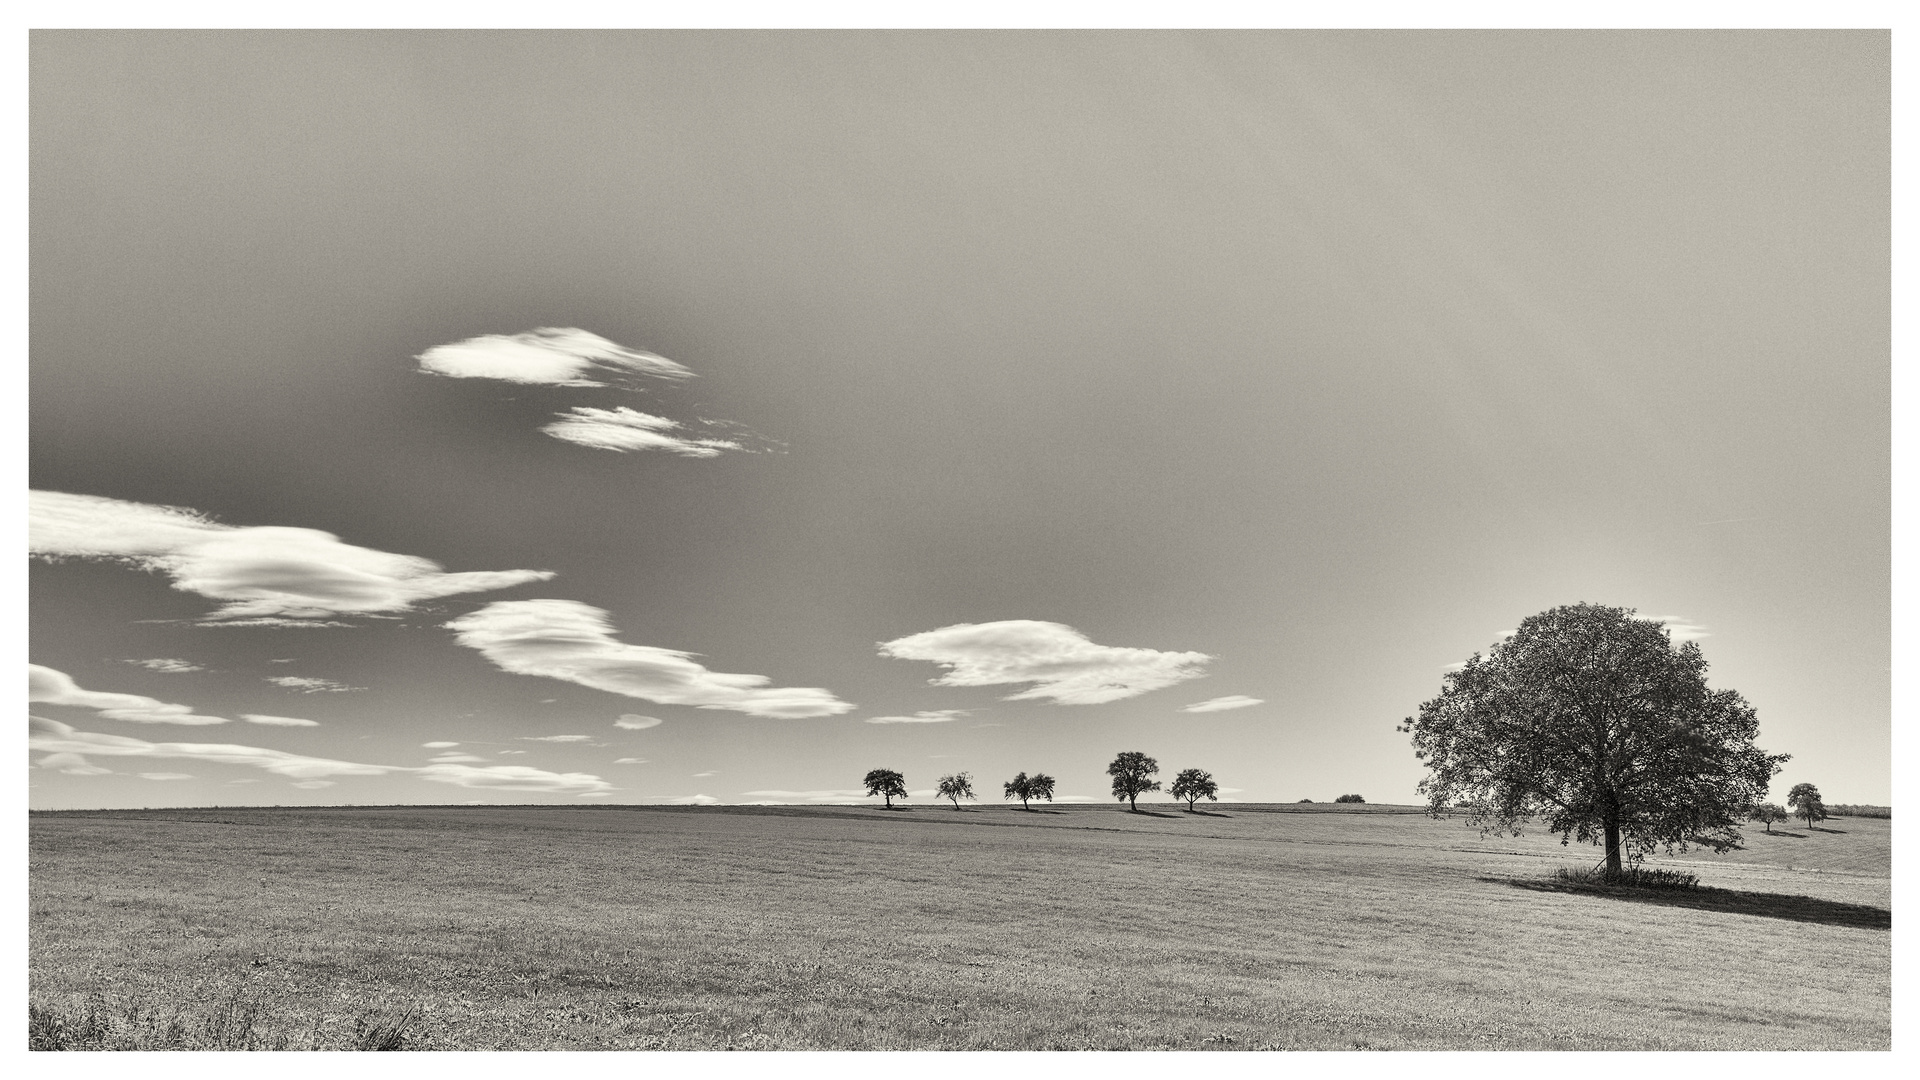 ...wide open spaces...